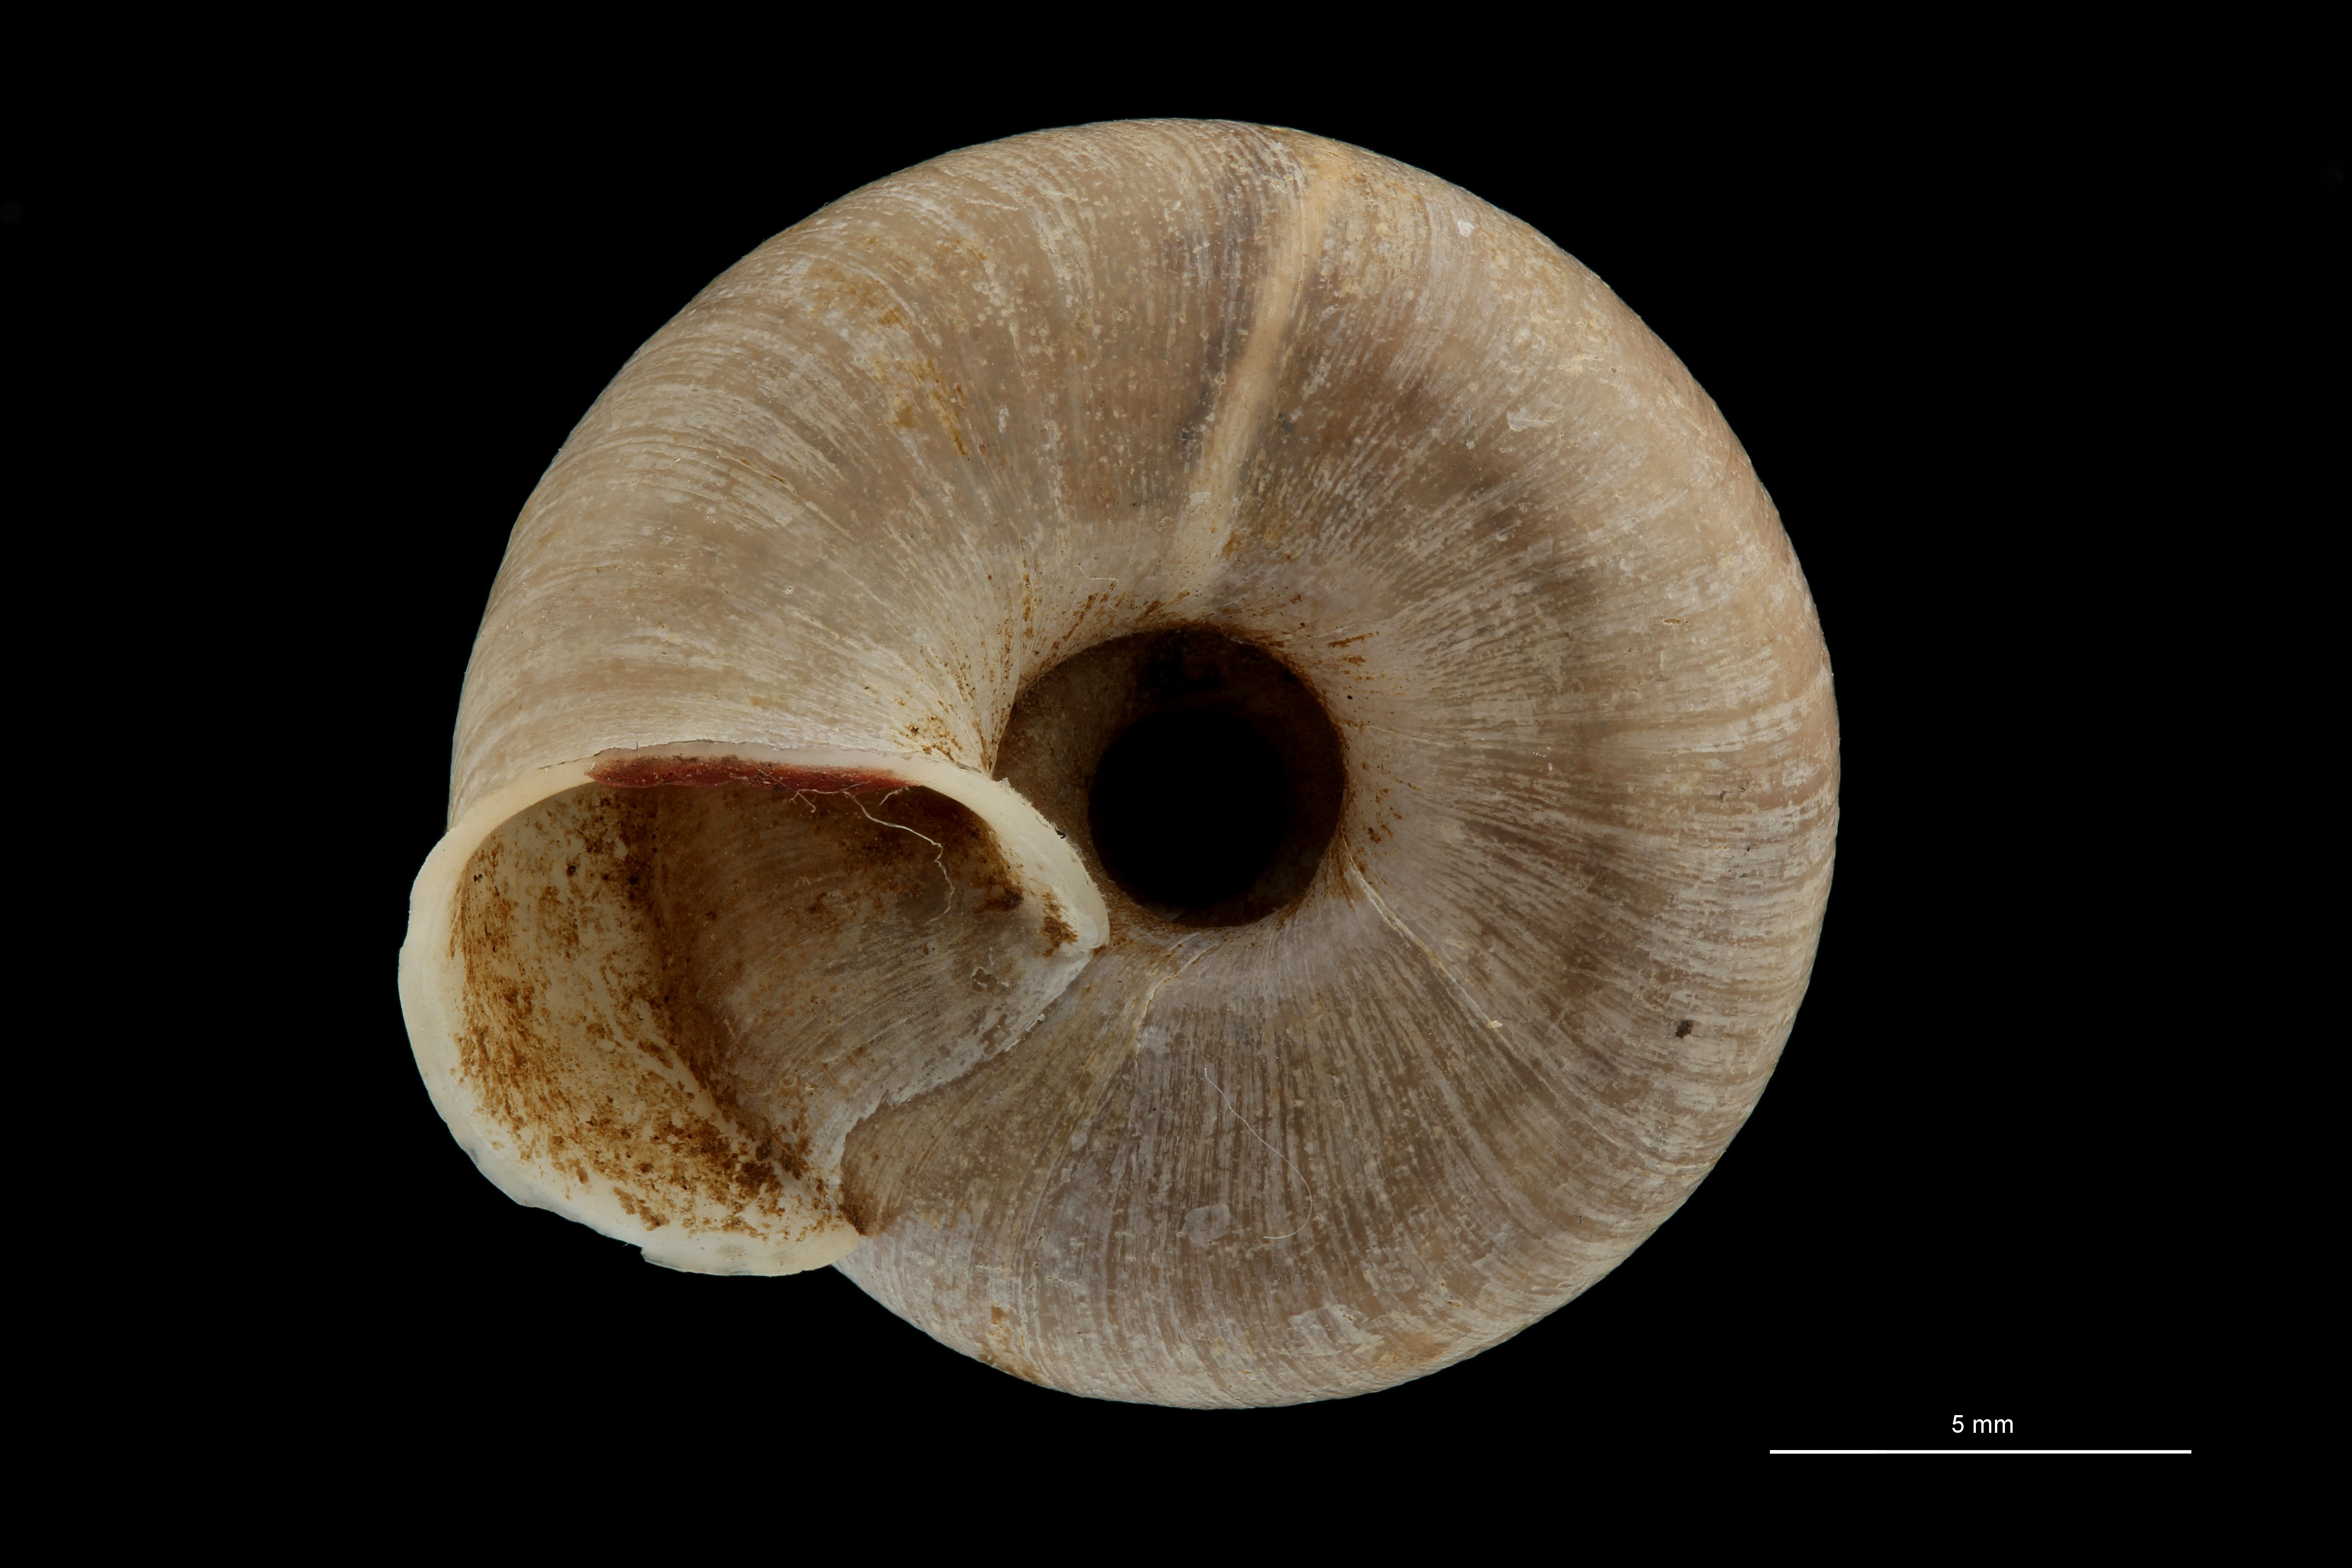 BE-RBINS-INV TYPE MT 718 Helix (Plectotropis) gitaena VENTRAL ZS PMax Scaled.jpg